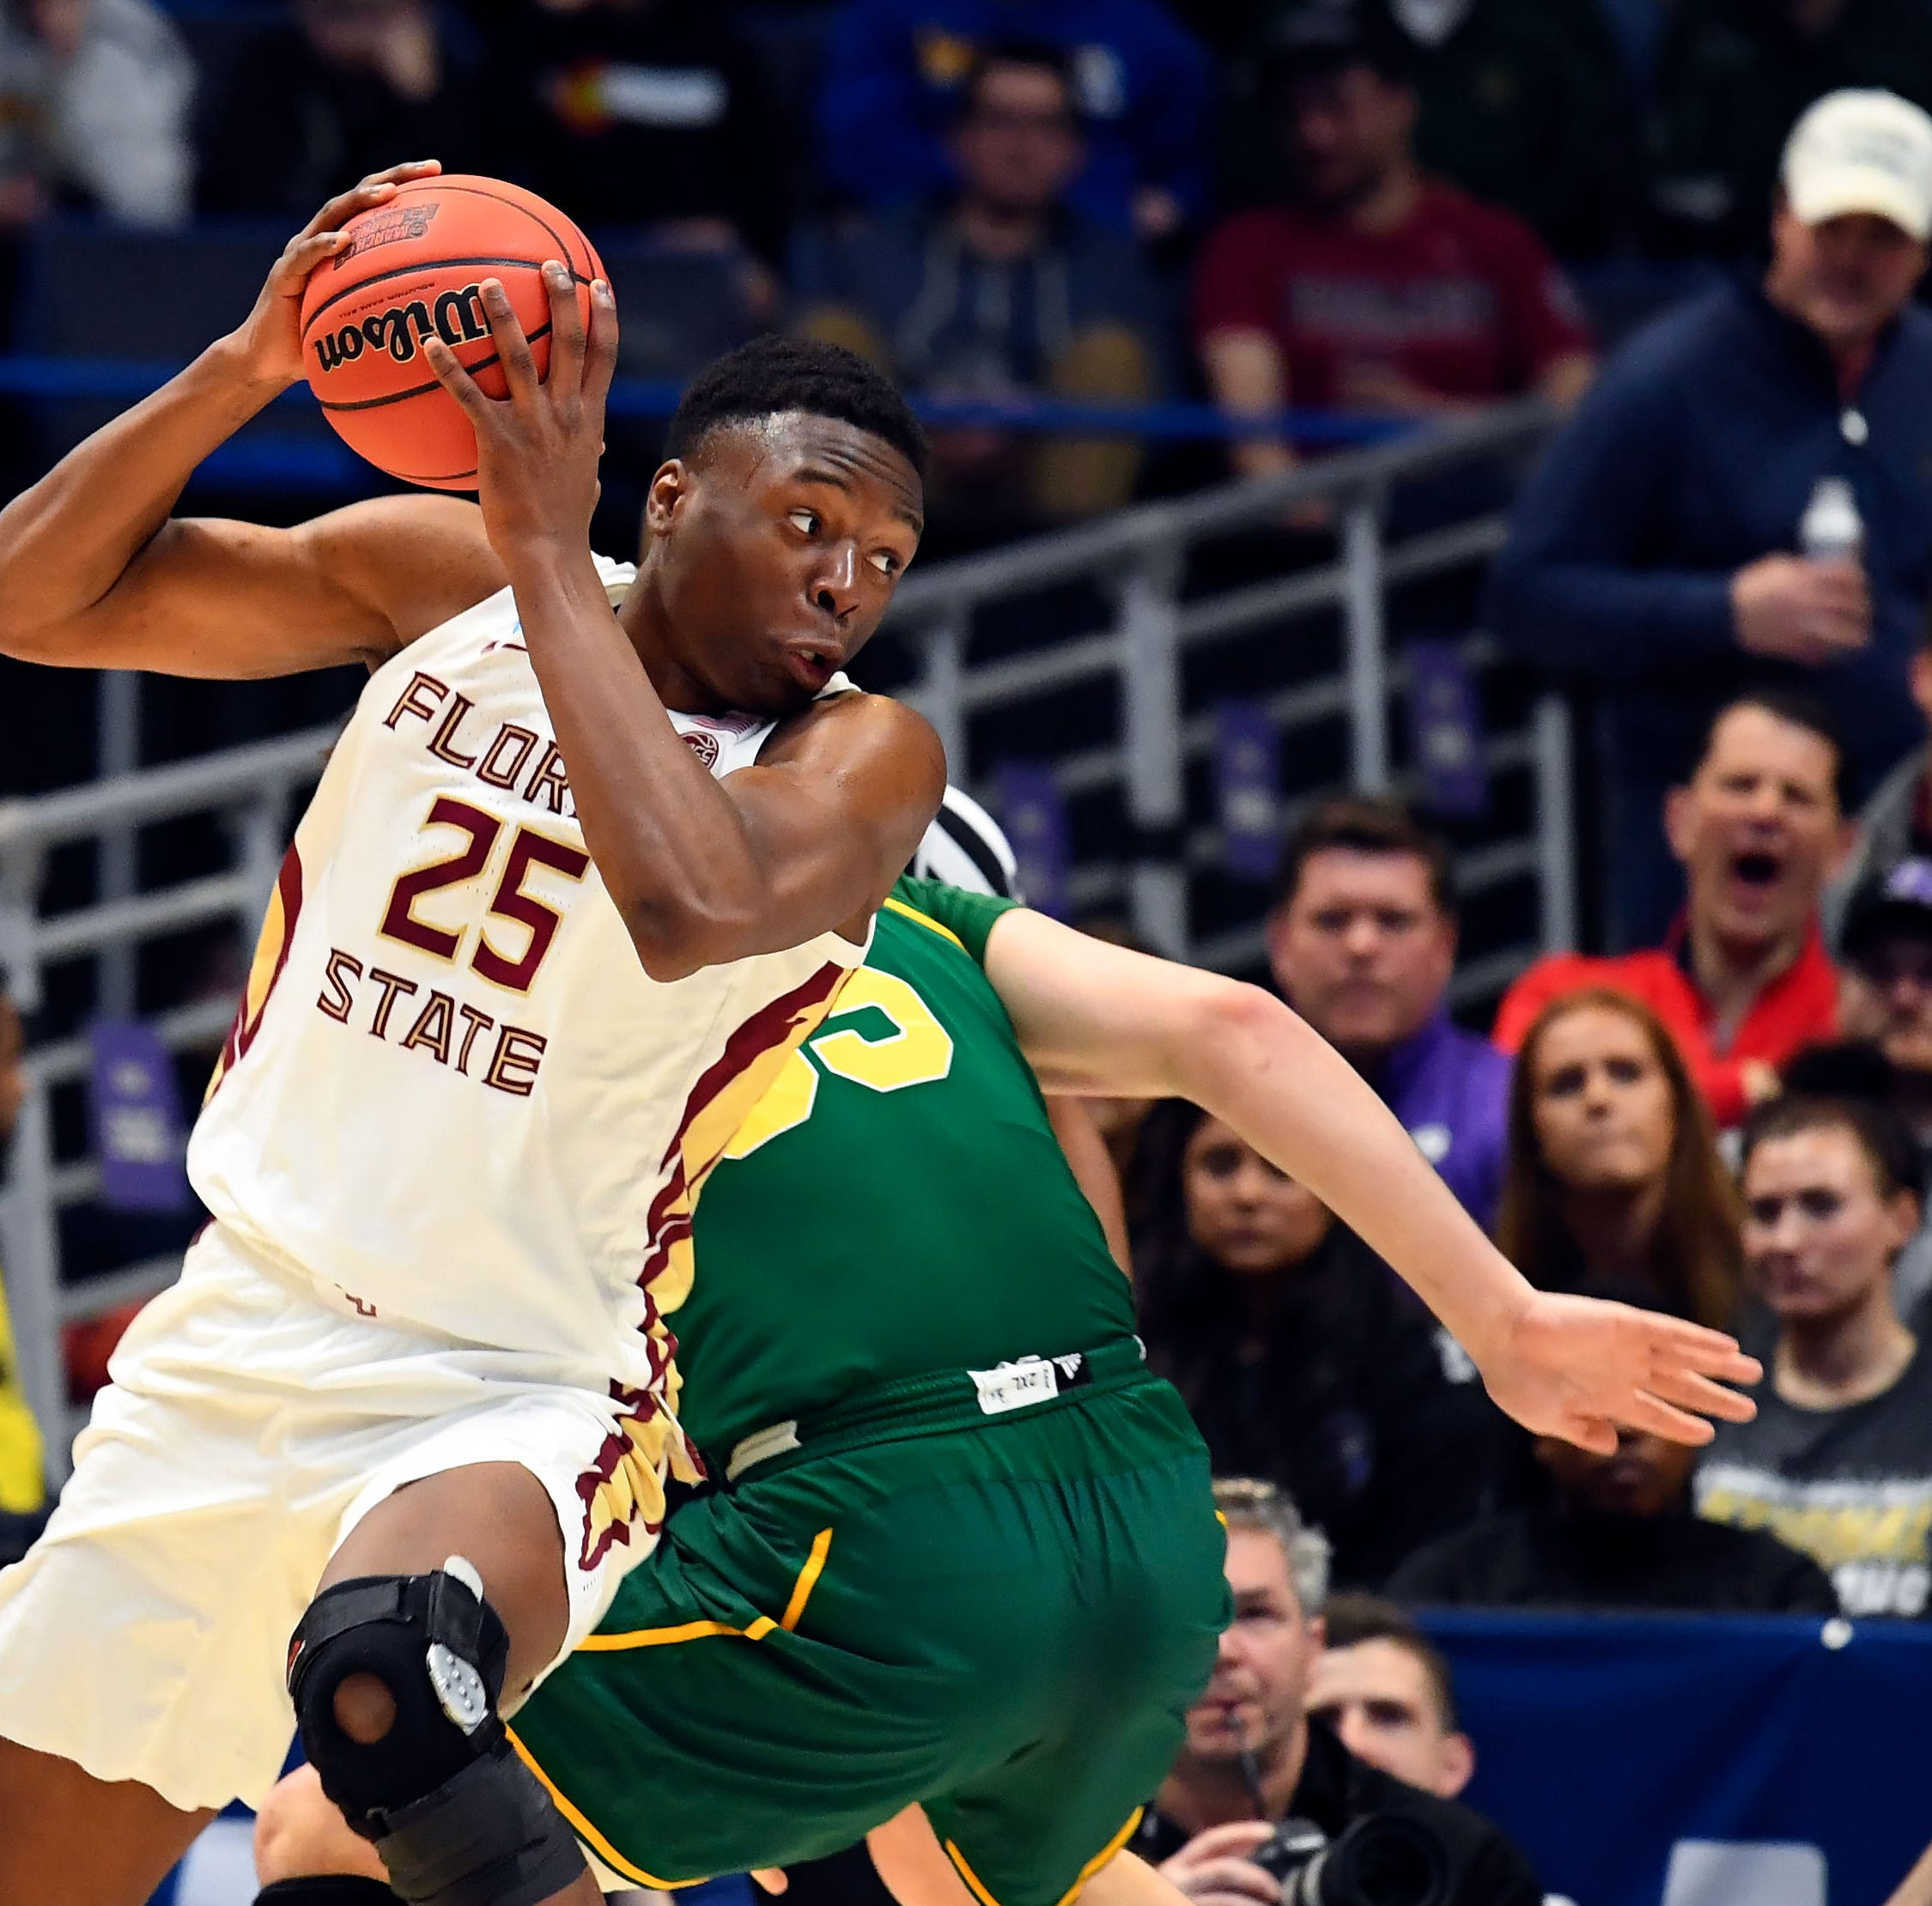 What will Florida State men's basketball look like next season?